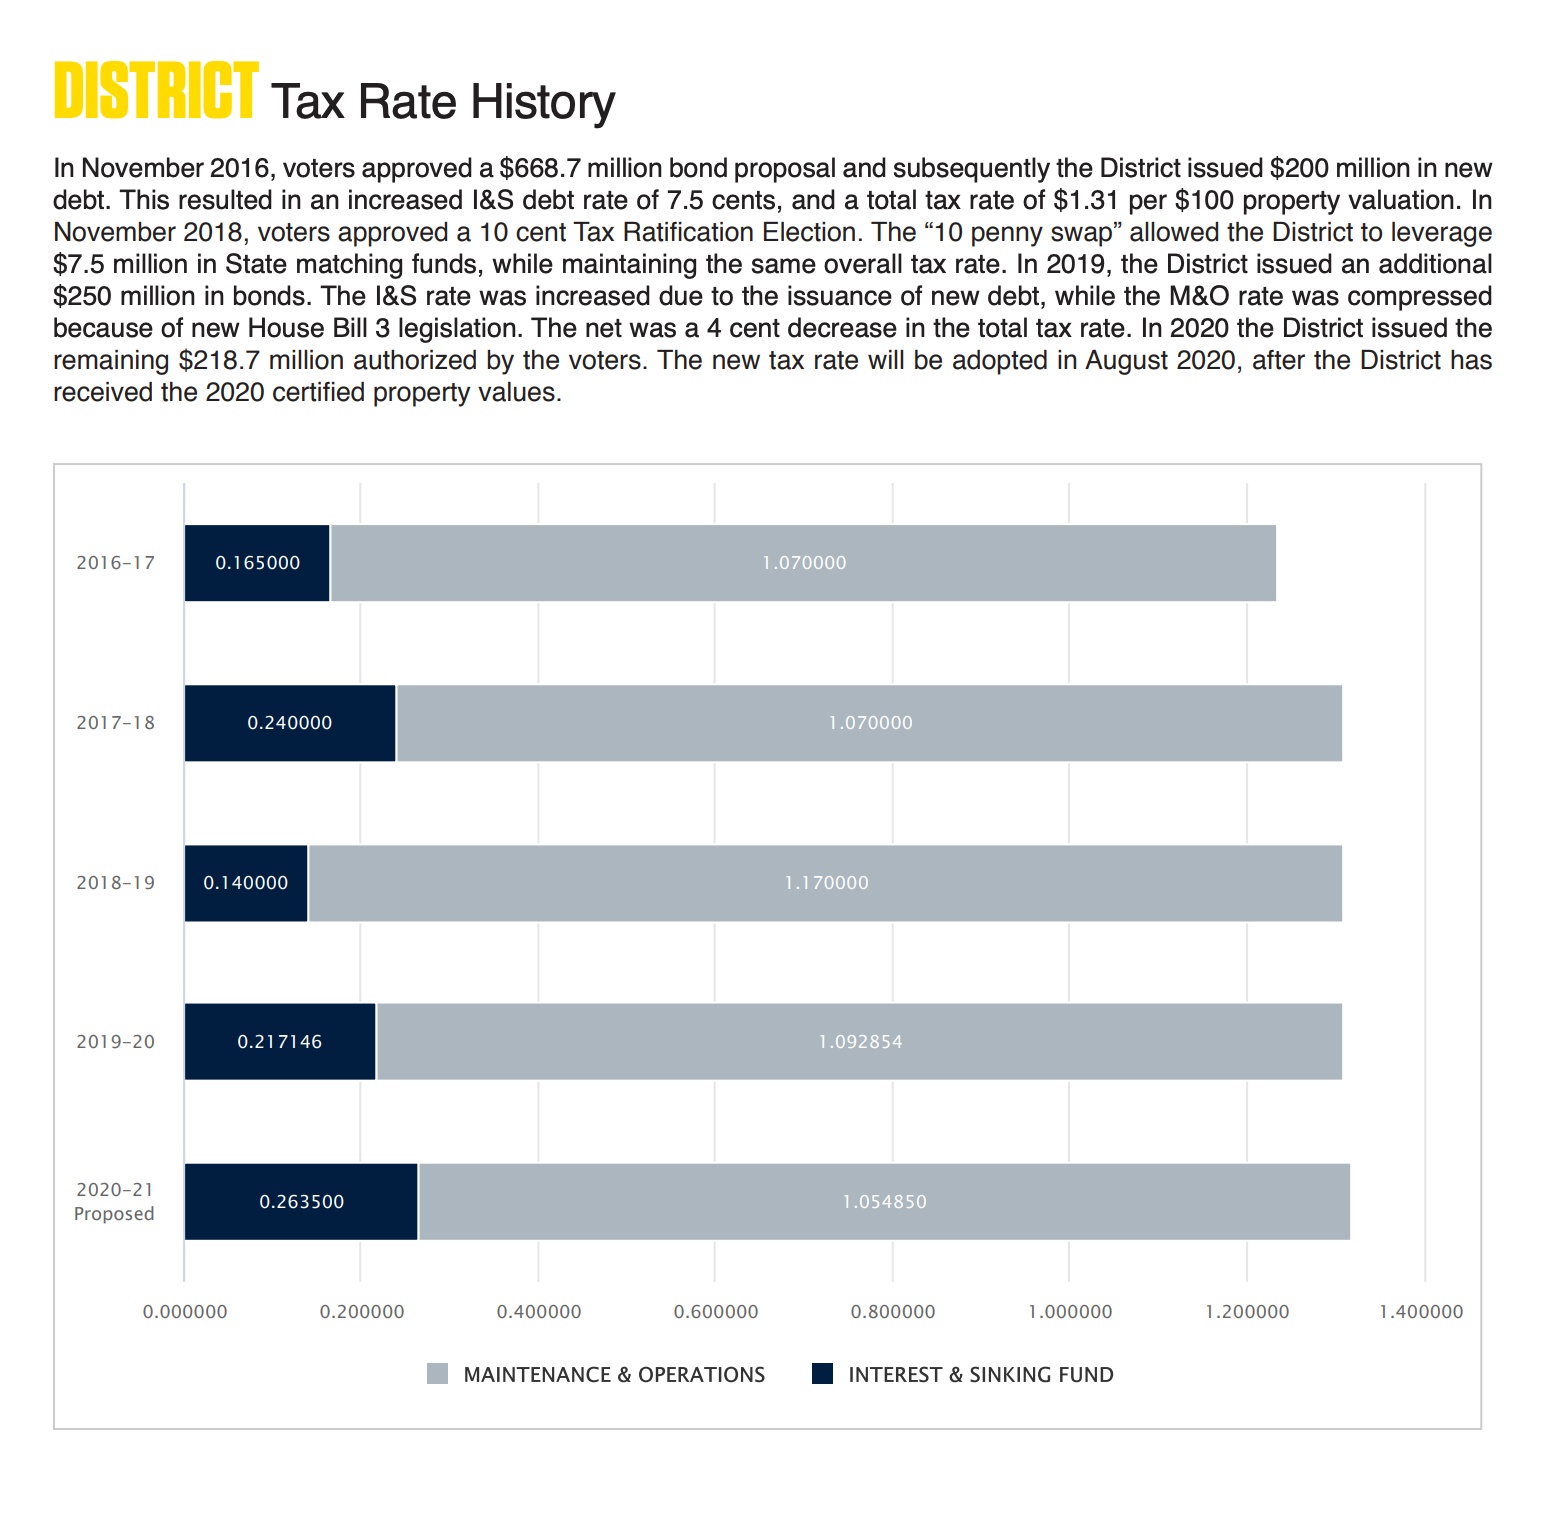 District Tax Rate History